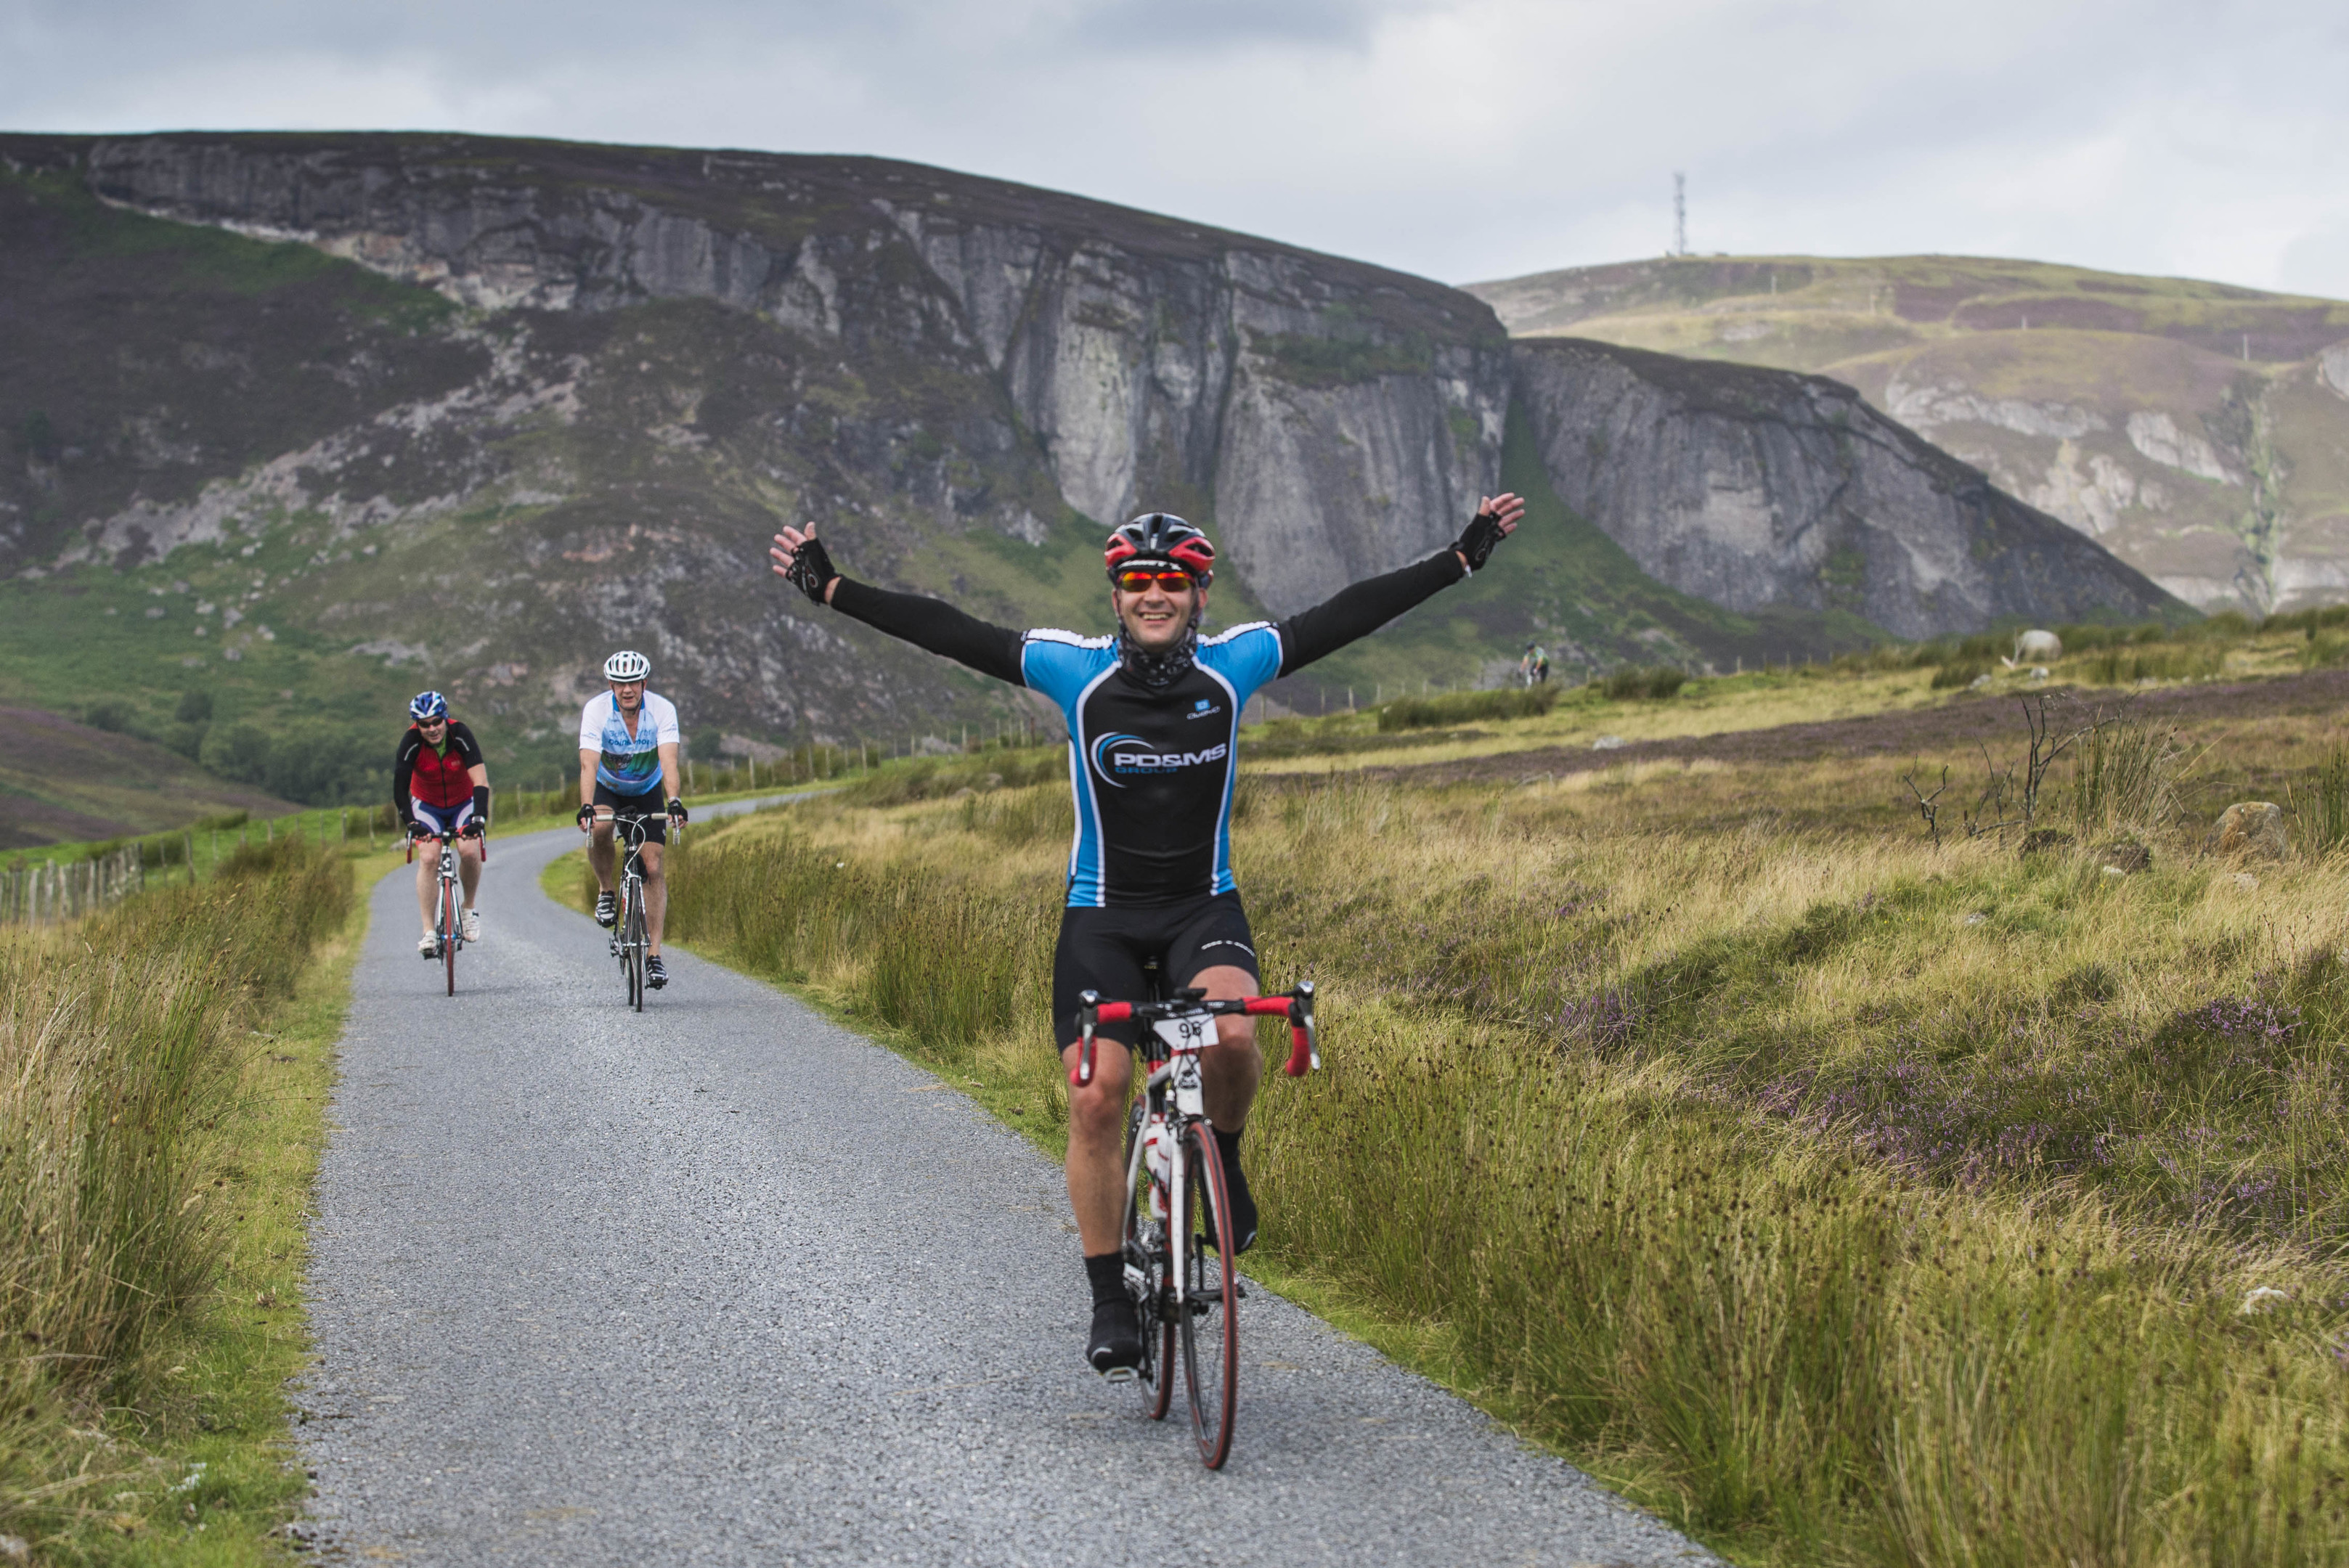 Ride the North 2015 Cycle challenge saw 850 riders cycle from Inverness to Elgin to Stonehaven over two days